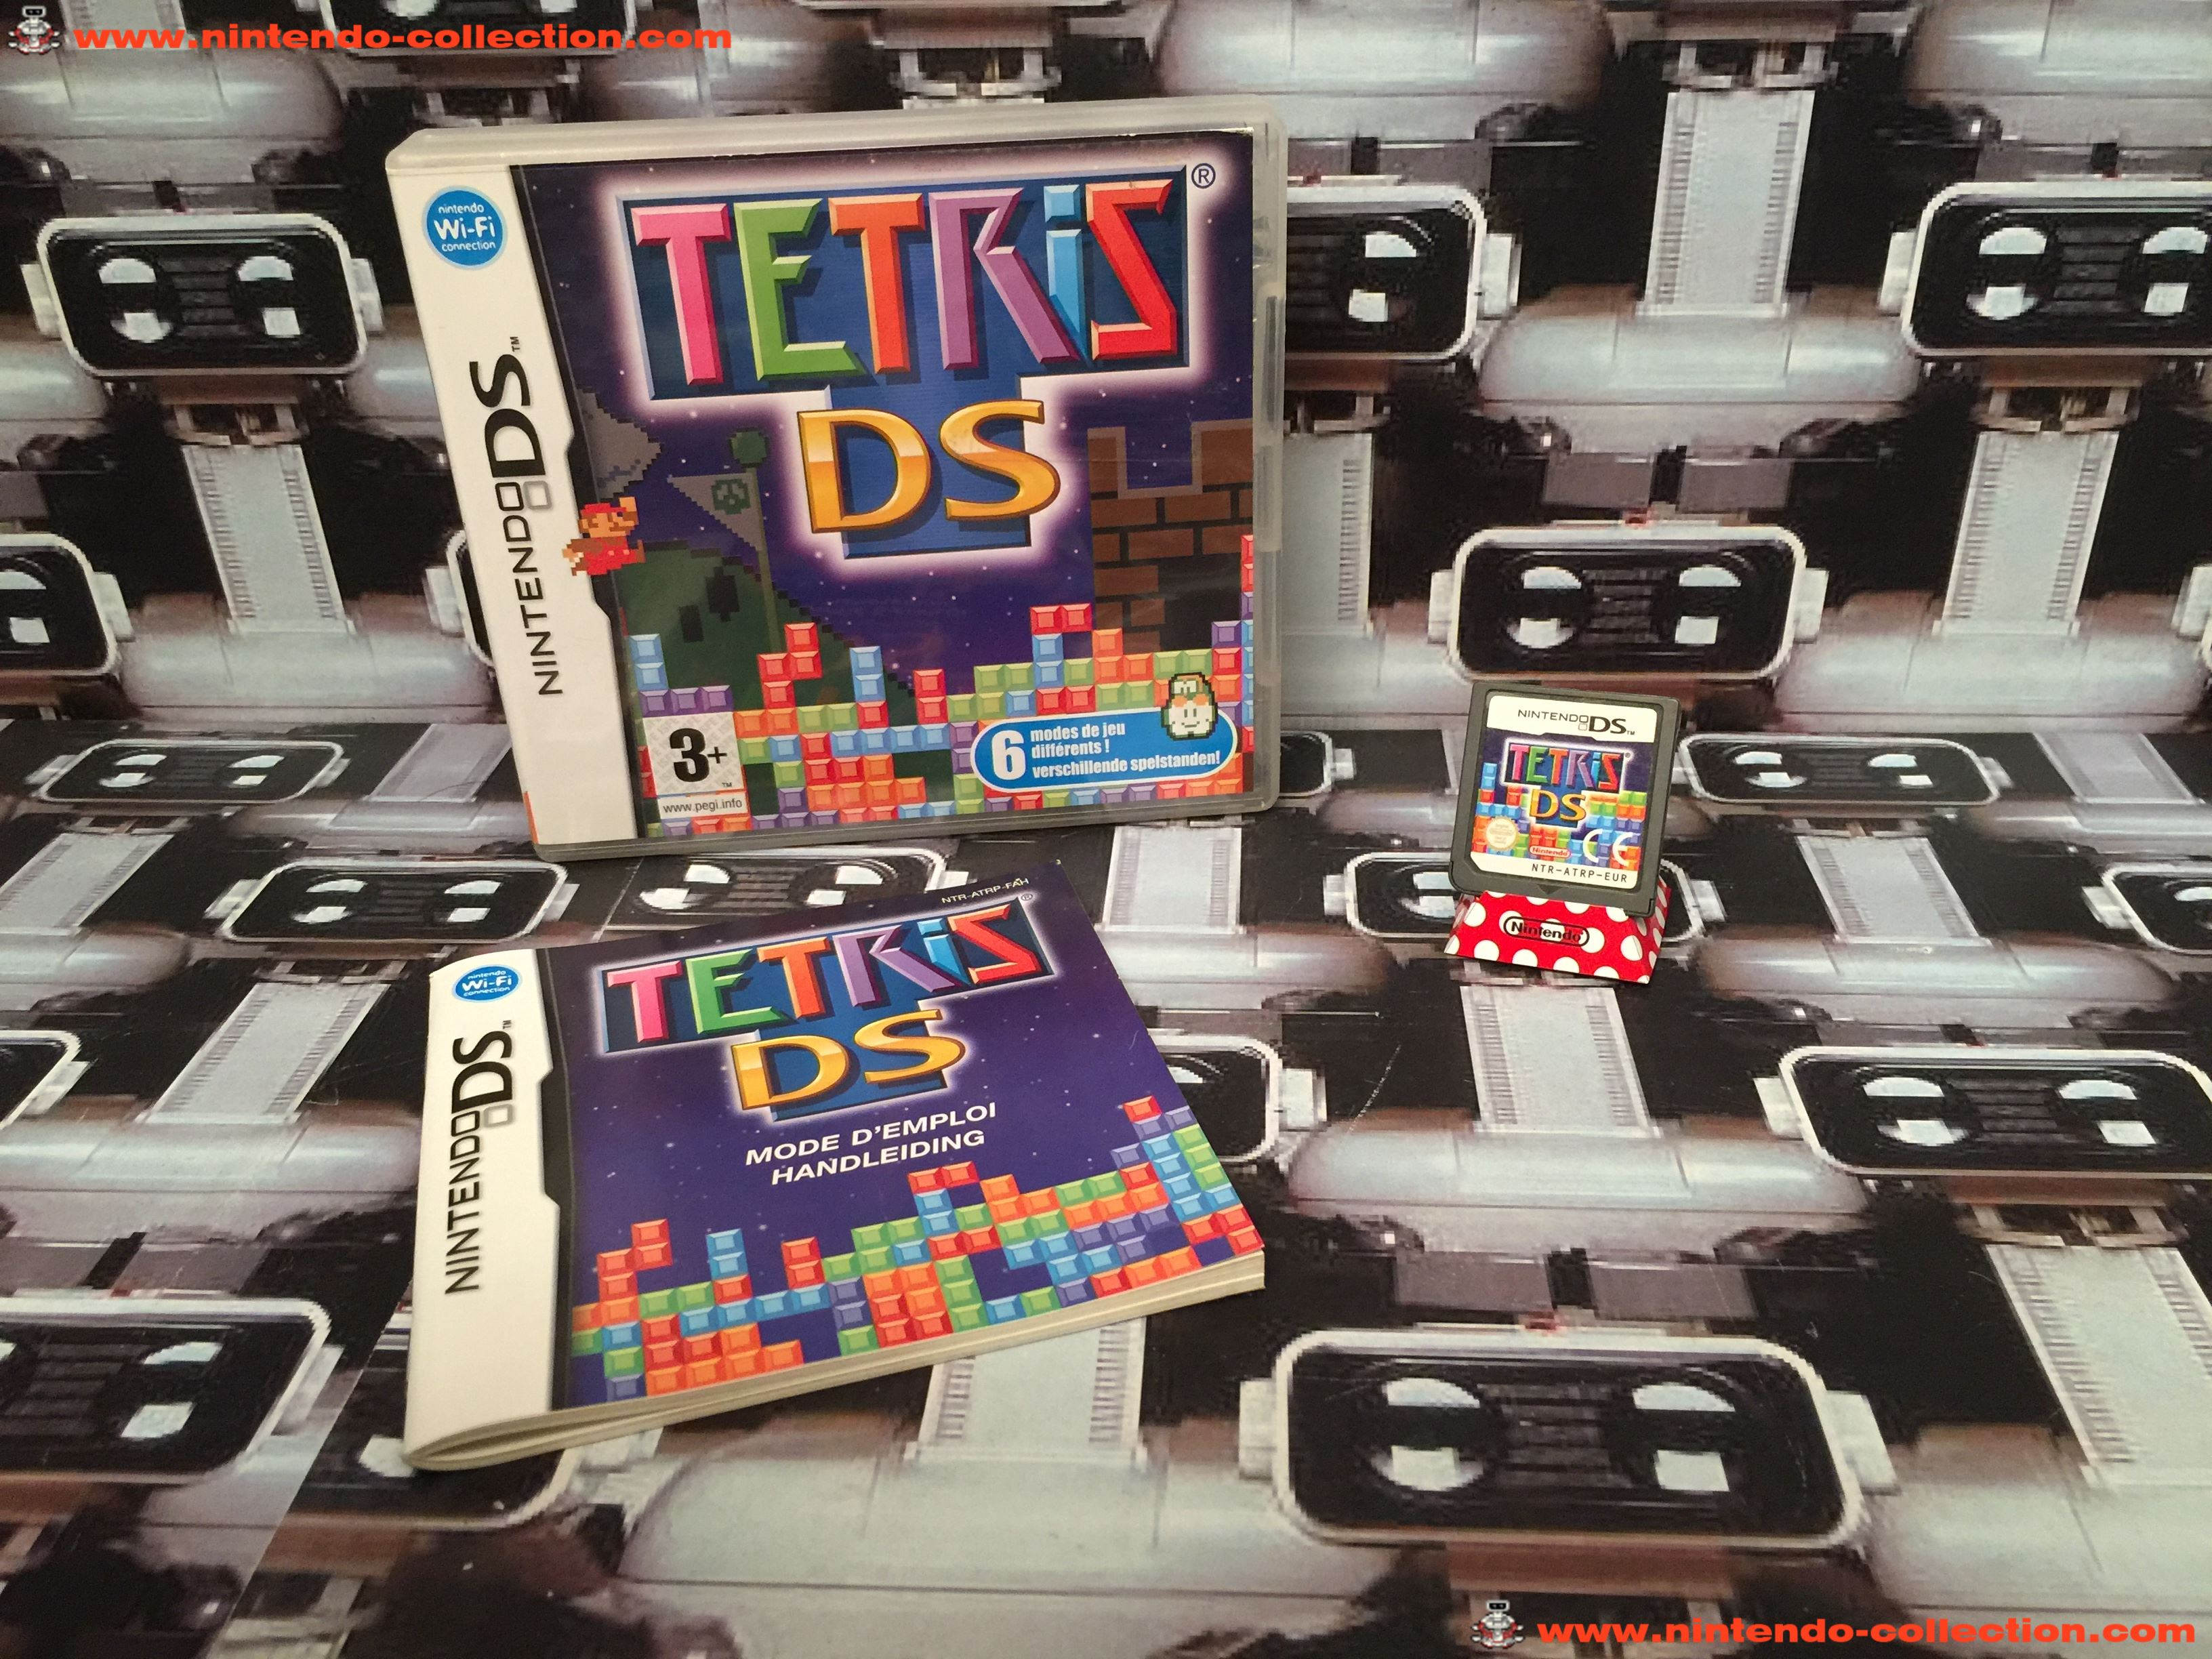 www.nintendo-collection.com - Nintendo DS Jeux Game Tetris DS Euro